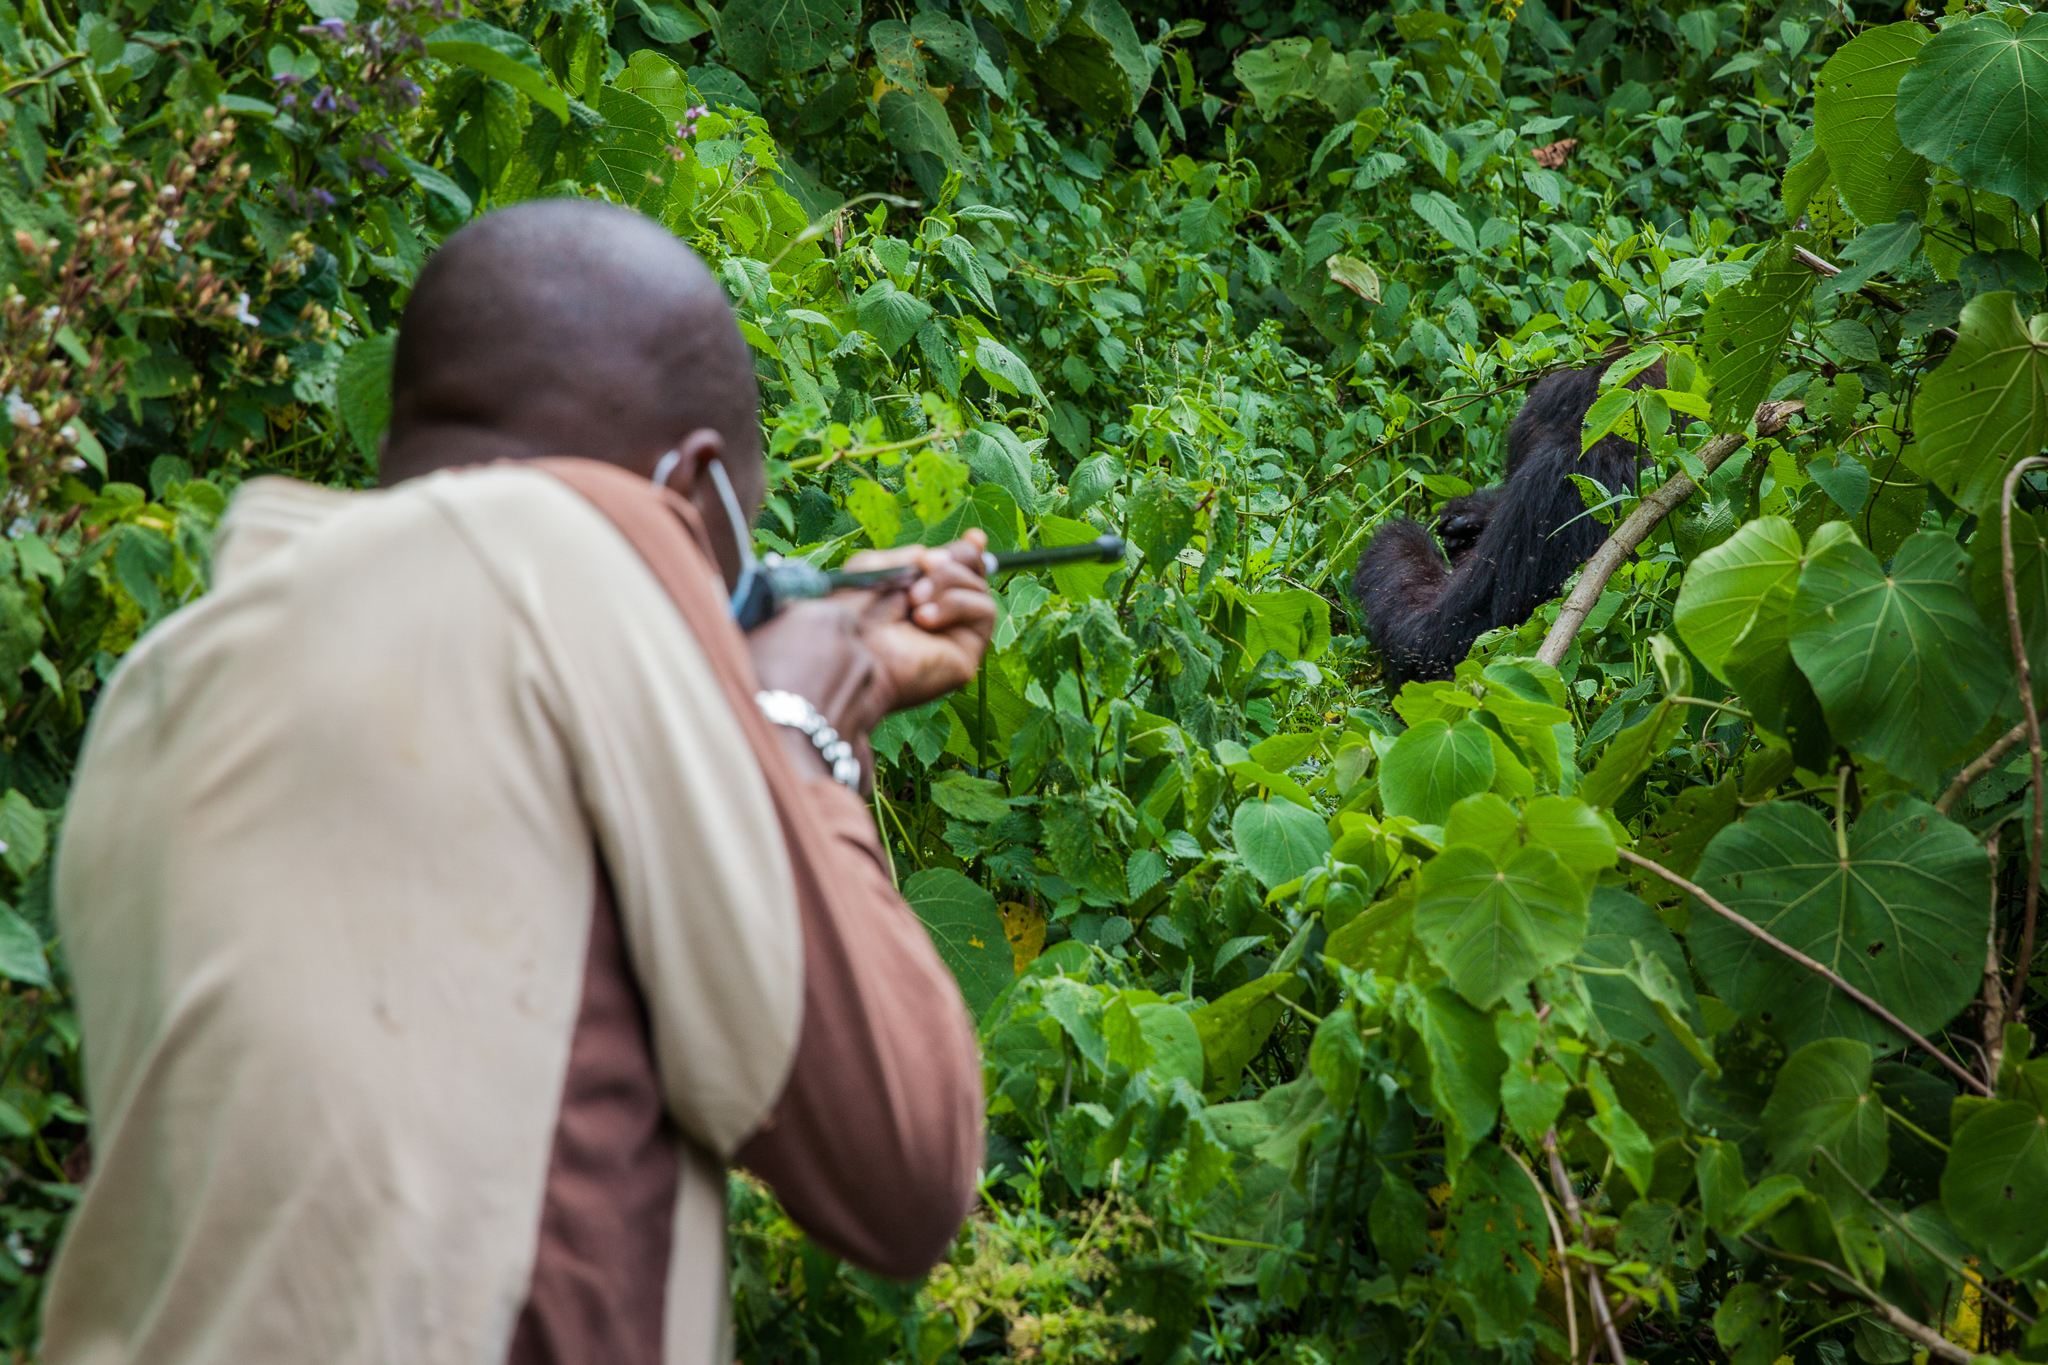 Eddy Kabale takes careful aim before puling the trigger. To avoid frightening or intimidating the group's silverback male, the team followed 33-year-old female mountain gorilla Gashangi until she became separated from the rest of her family.